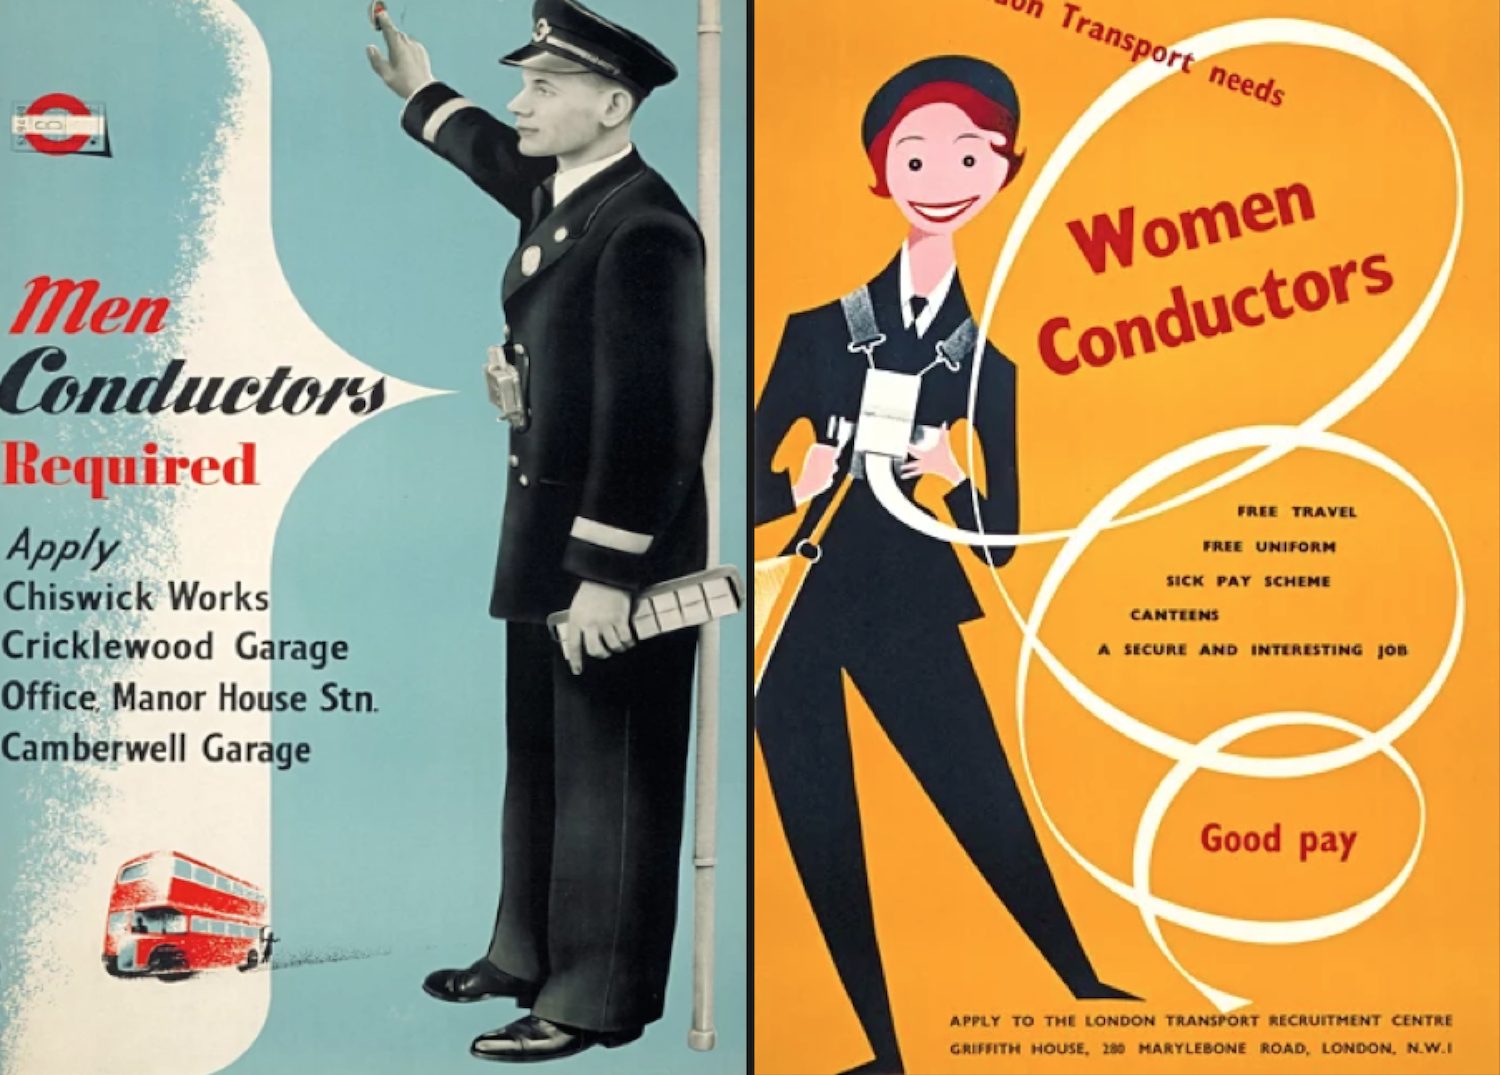 posters for men and women conductors in UK